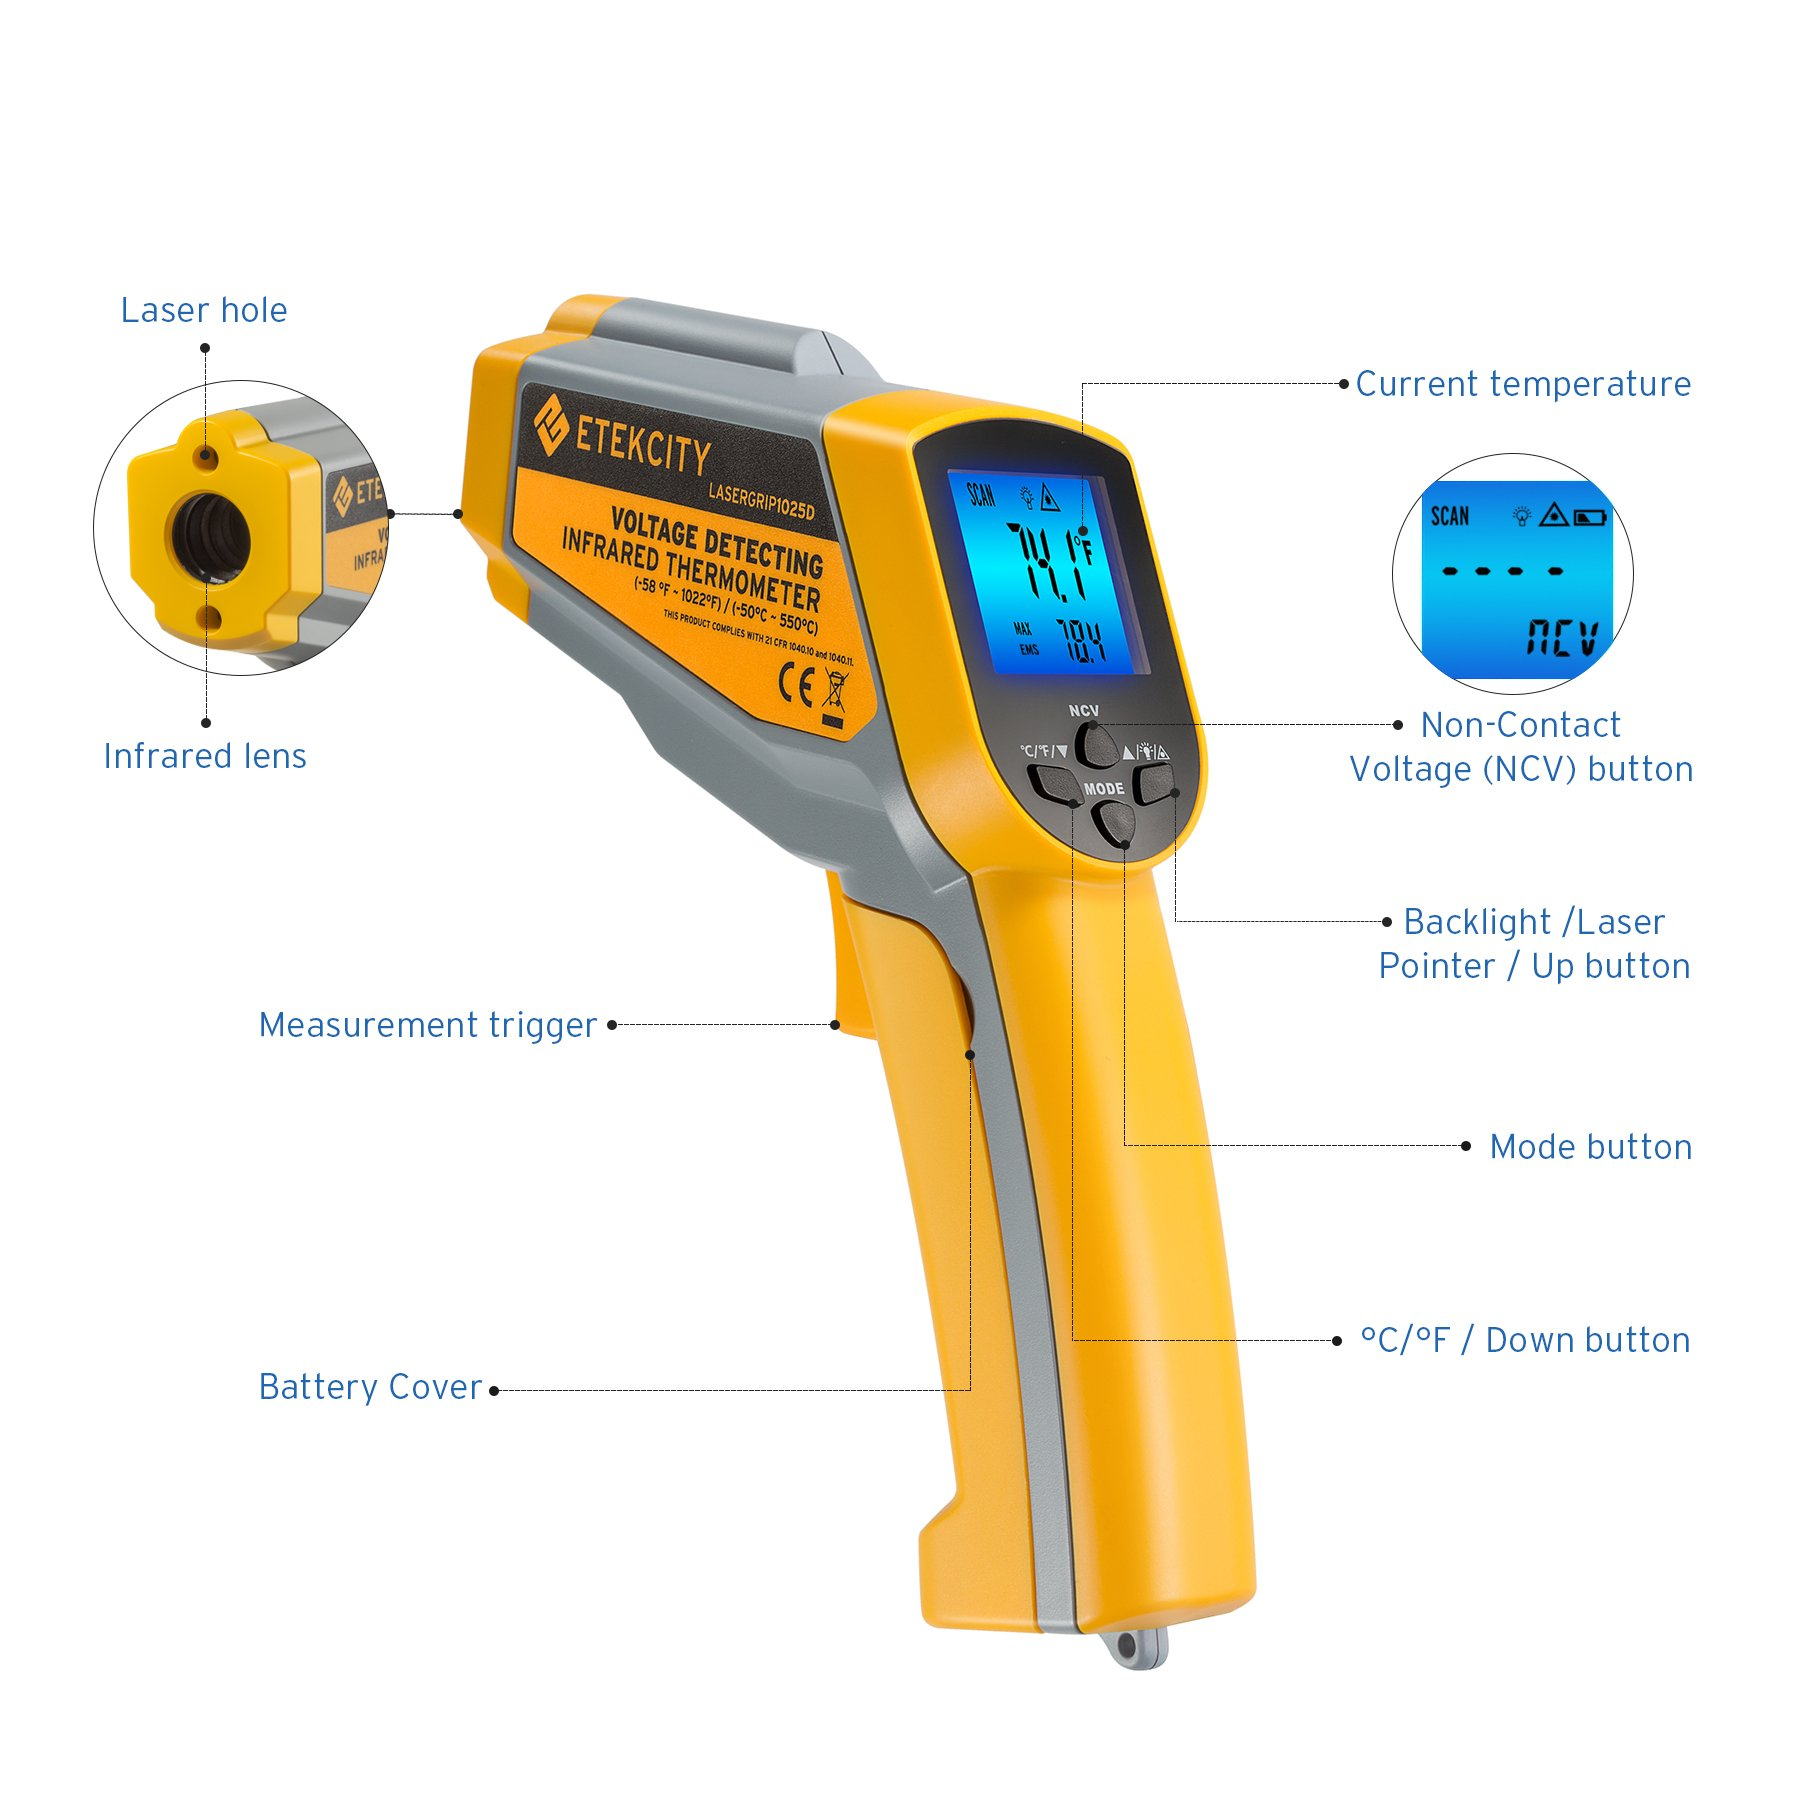 Etekcity Lasergrip 1025D Digital Dual Laser Infrared Thermometer Temperature Gun Non-contact -58℉~1022℉ (-50℃ ~ 550℃) with Voltage Detecting, Adjustable Emissivity by Etekcity (Image #2)